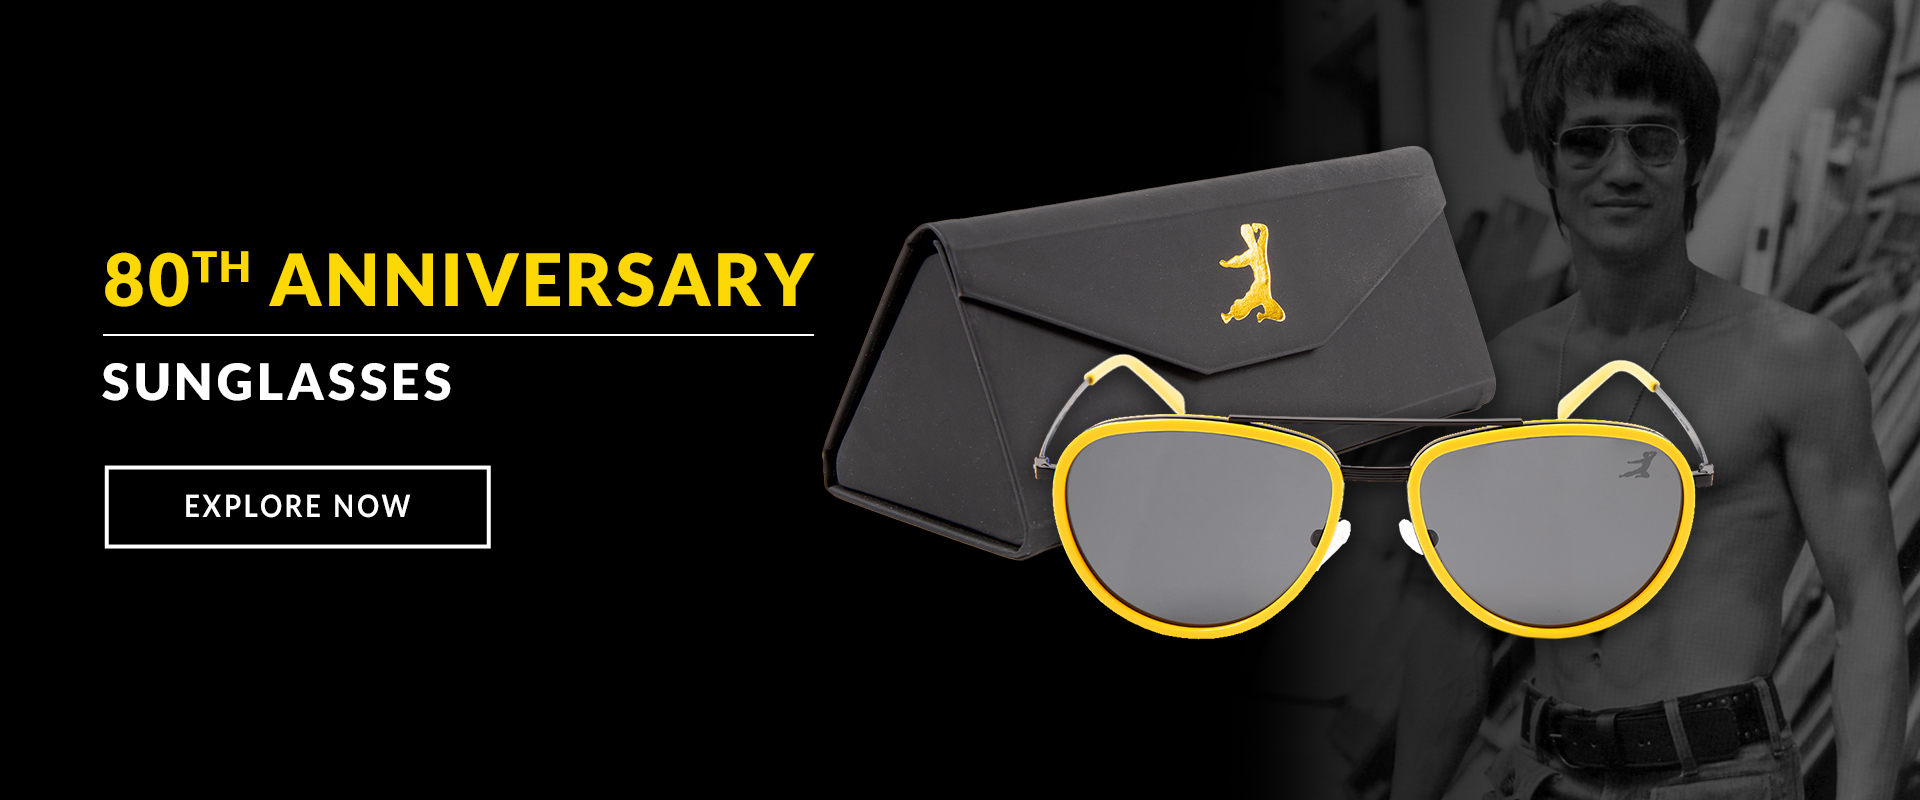 Bruce Lee 80th Anniversary Sunglasses